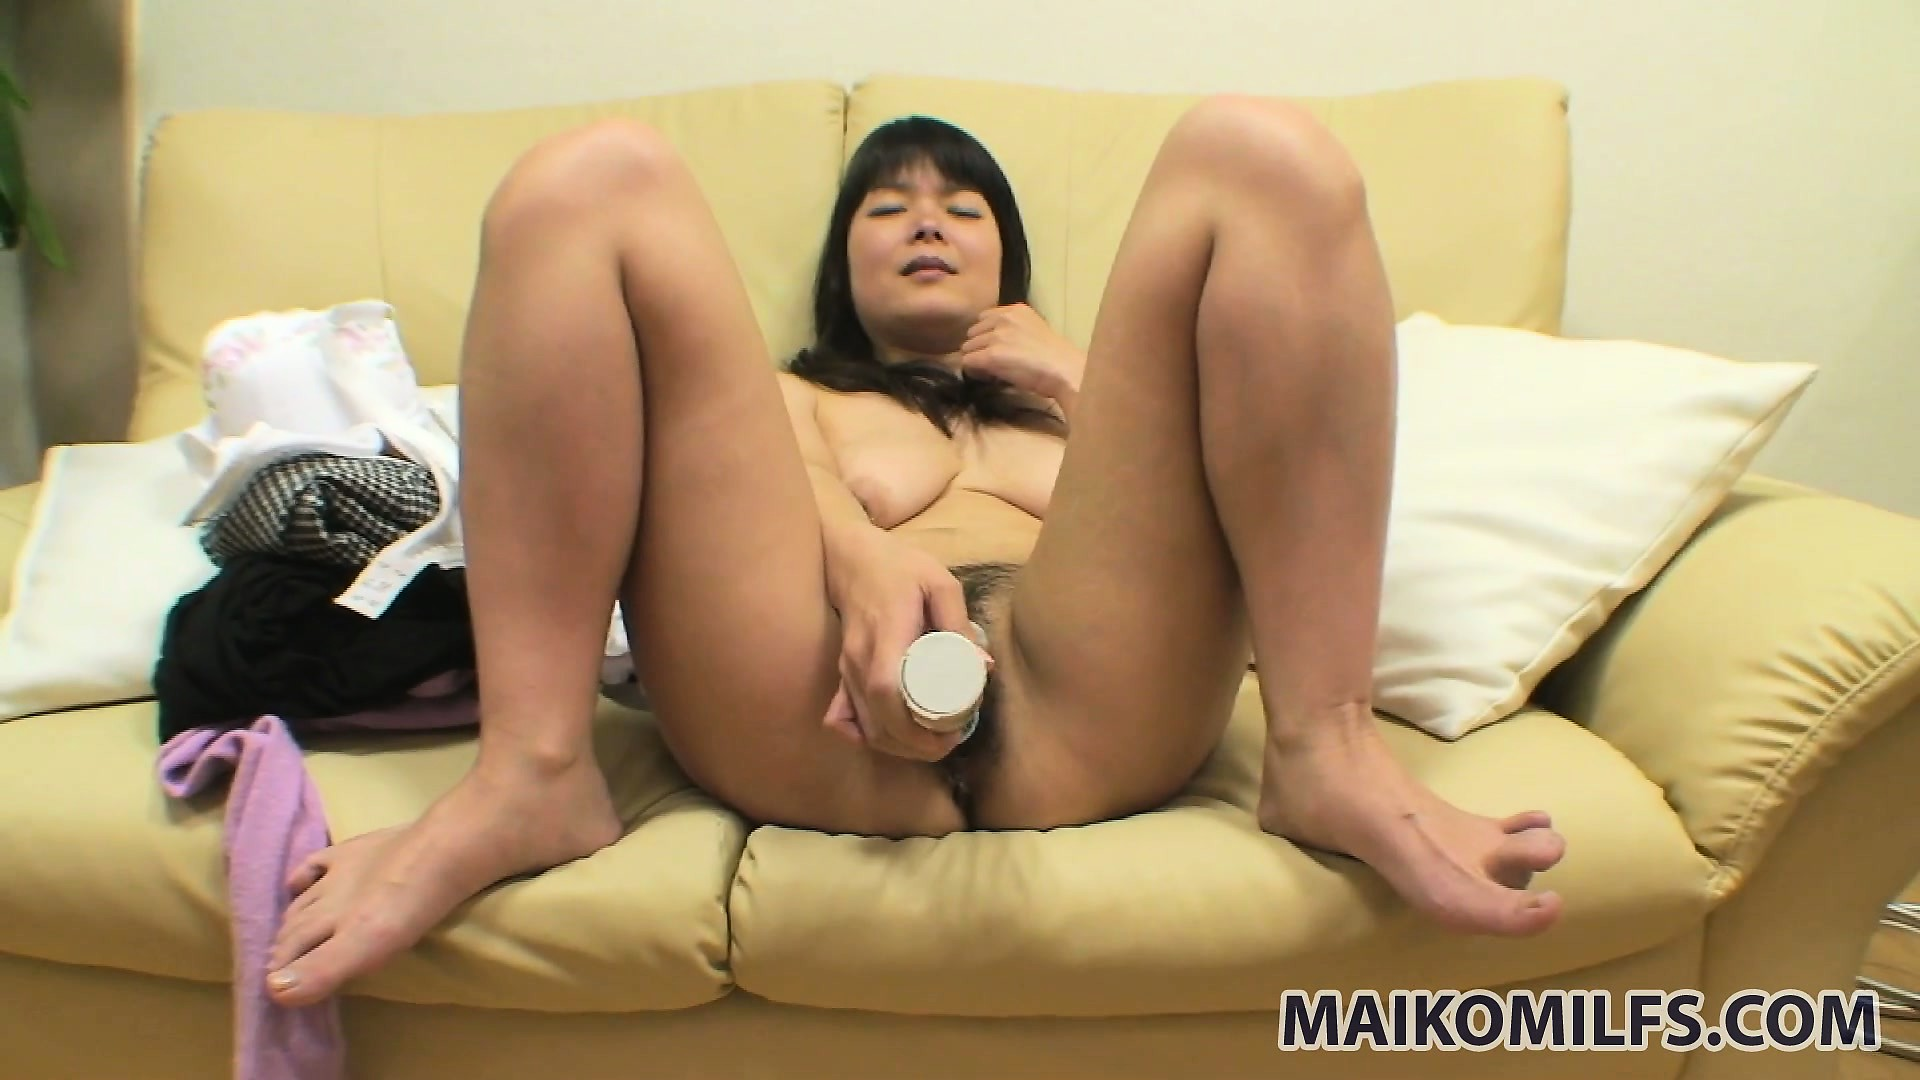 Porno Video of The Milf Sends A Big Dildo Exploring Her Tight Peach And Gets Even More Excited